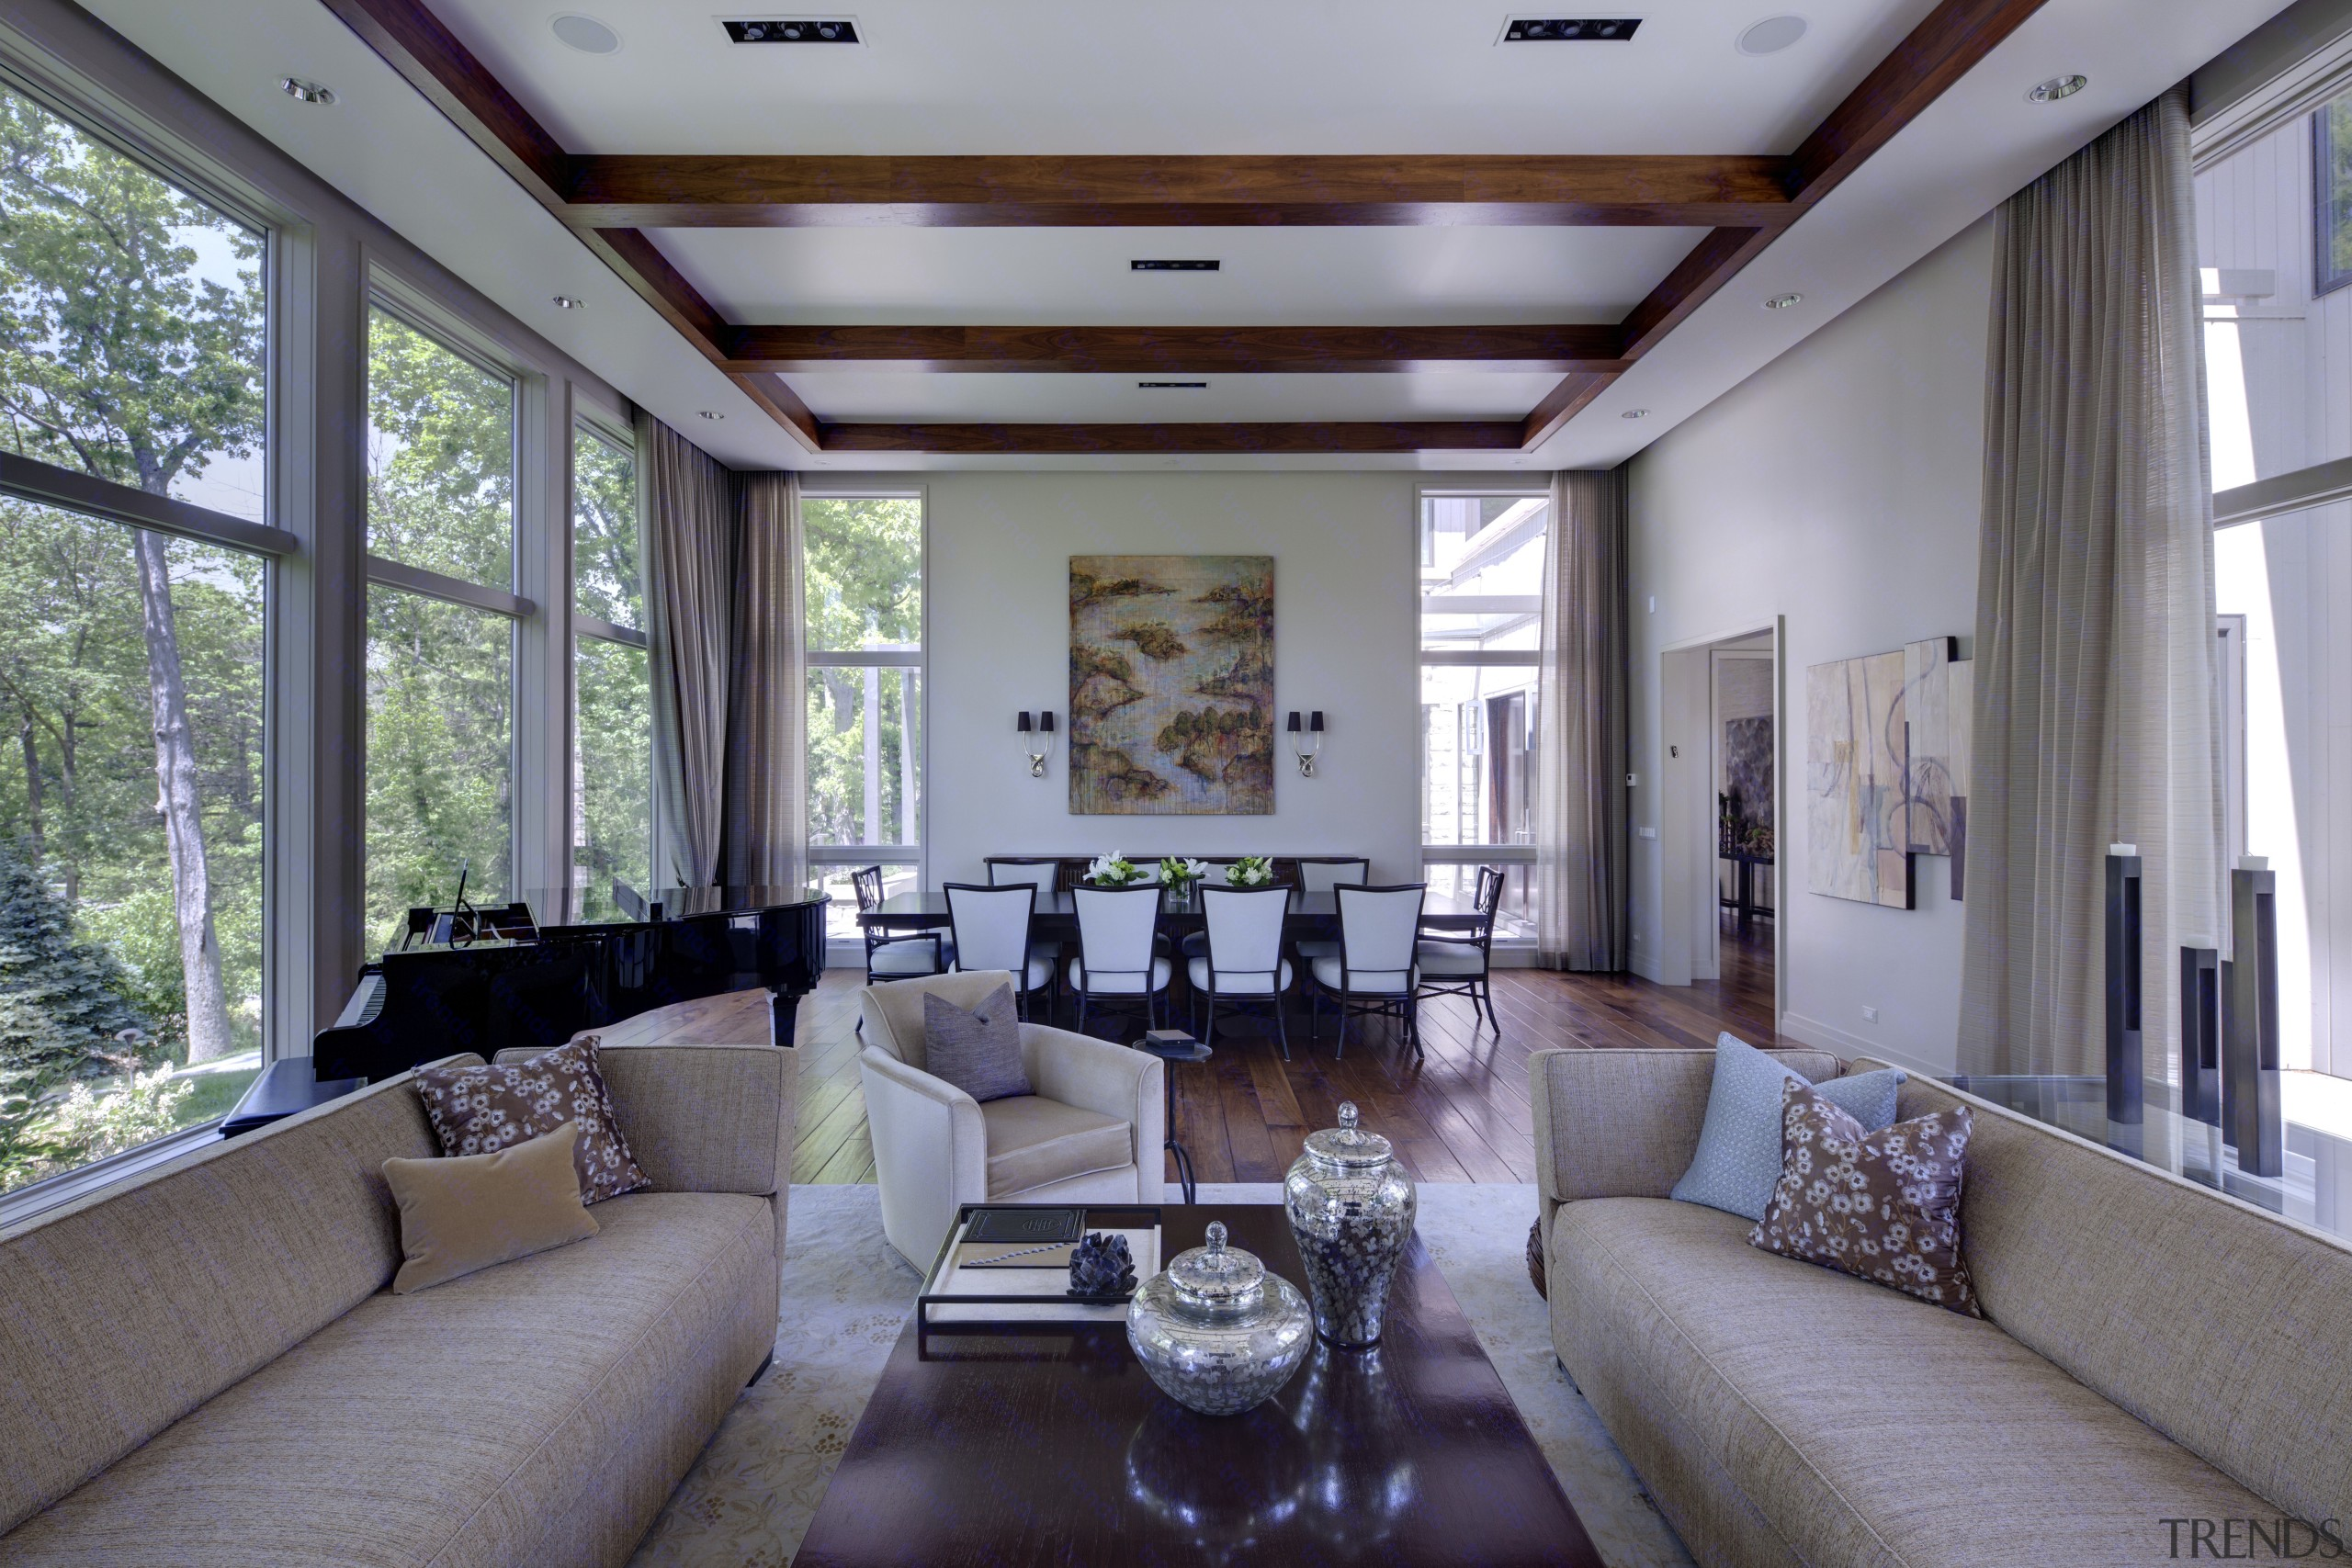 Greys and whites offset wooden floors and ceilings. ceiling, interior design, living room, real estate, window, gray